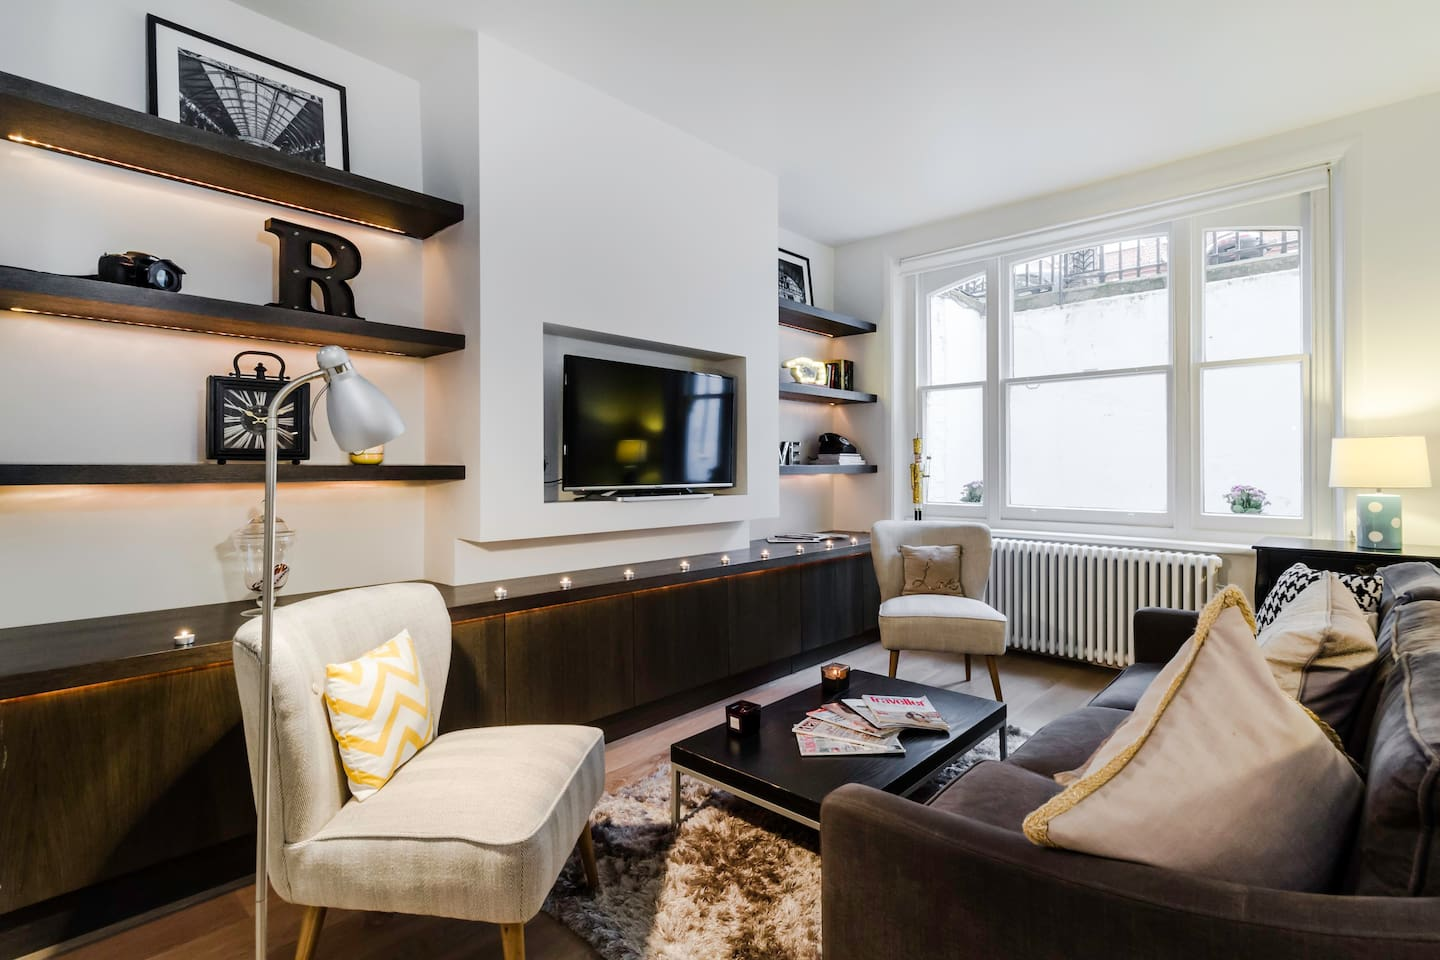 designer w kensington flat serviced by hostmaker apartments for